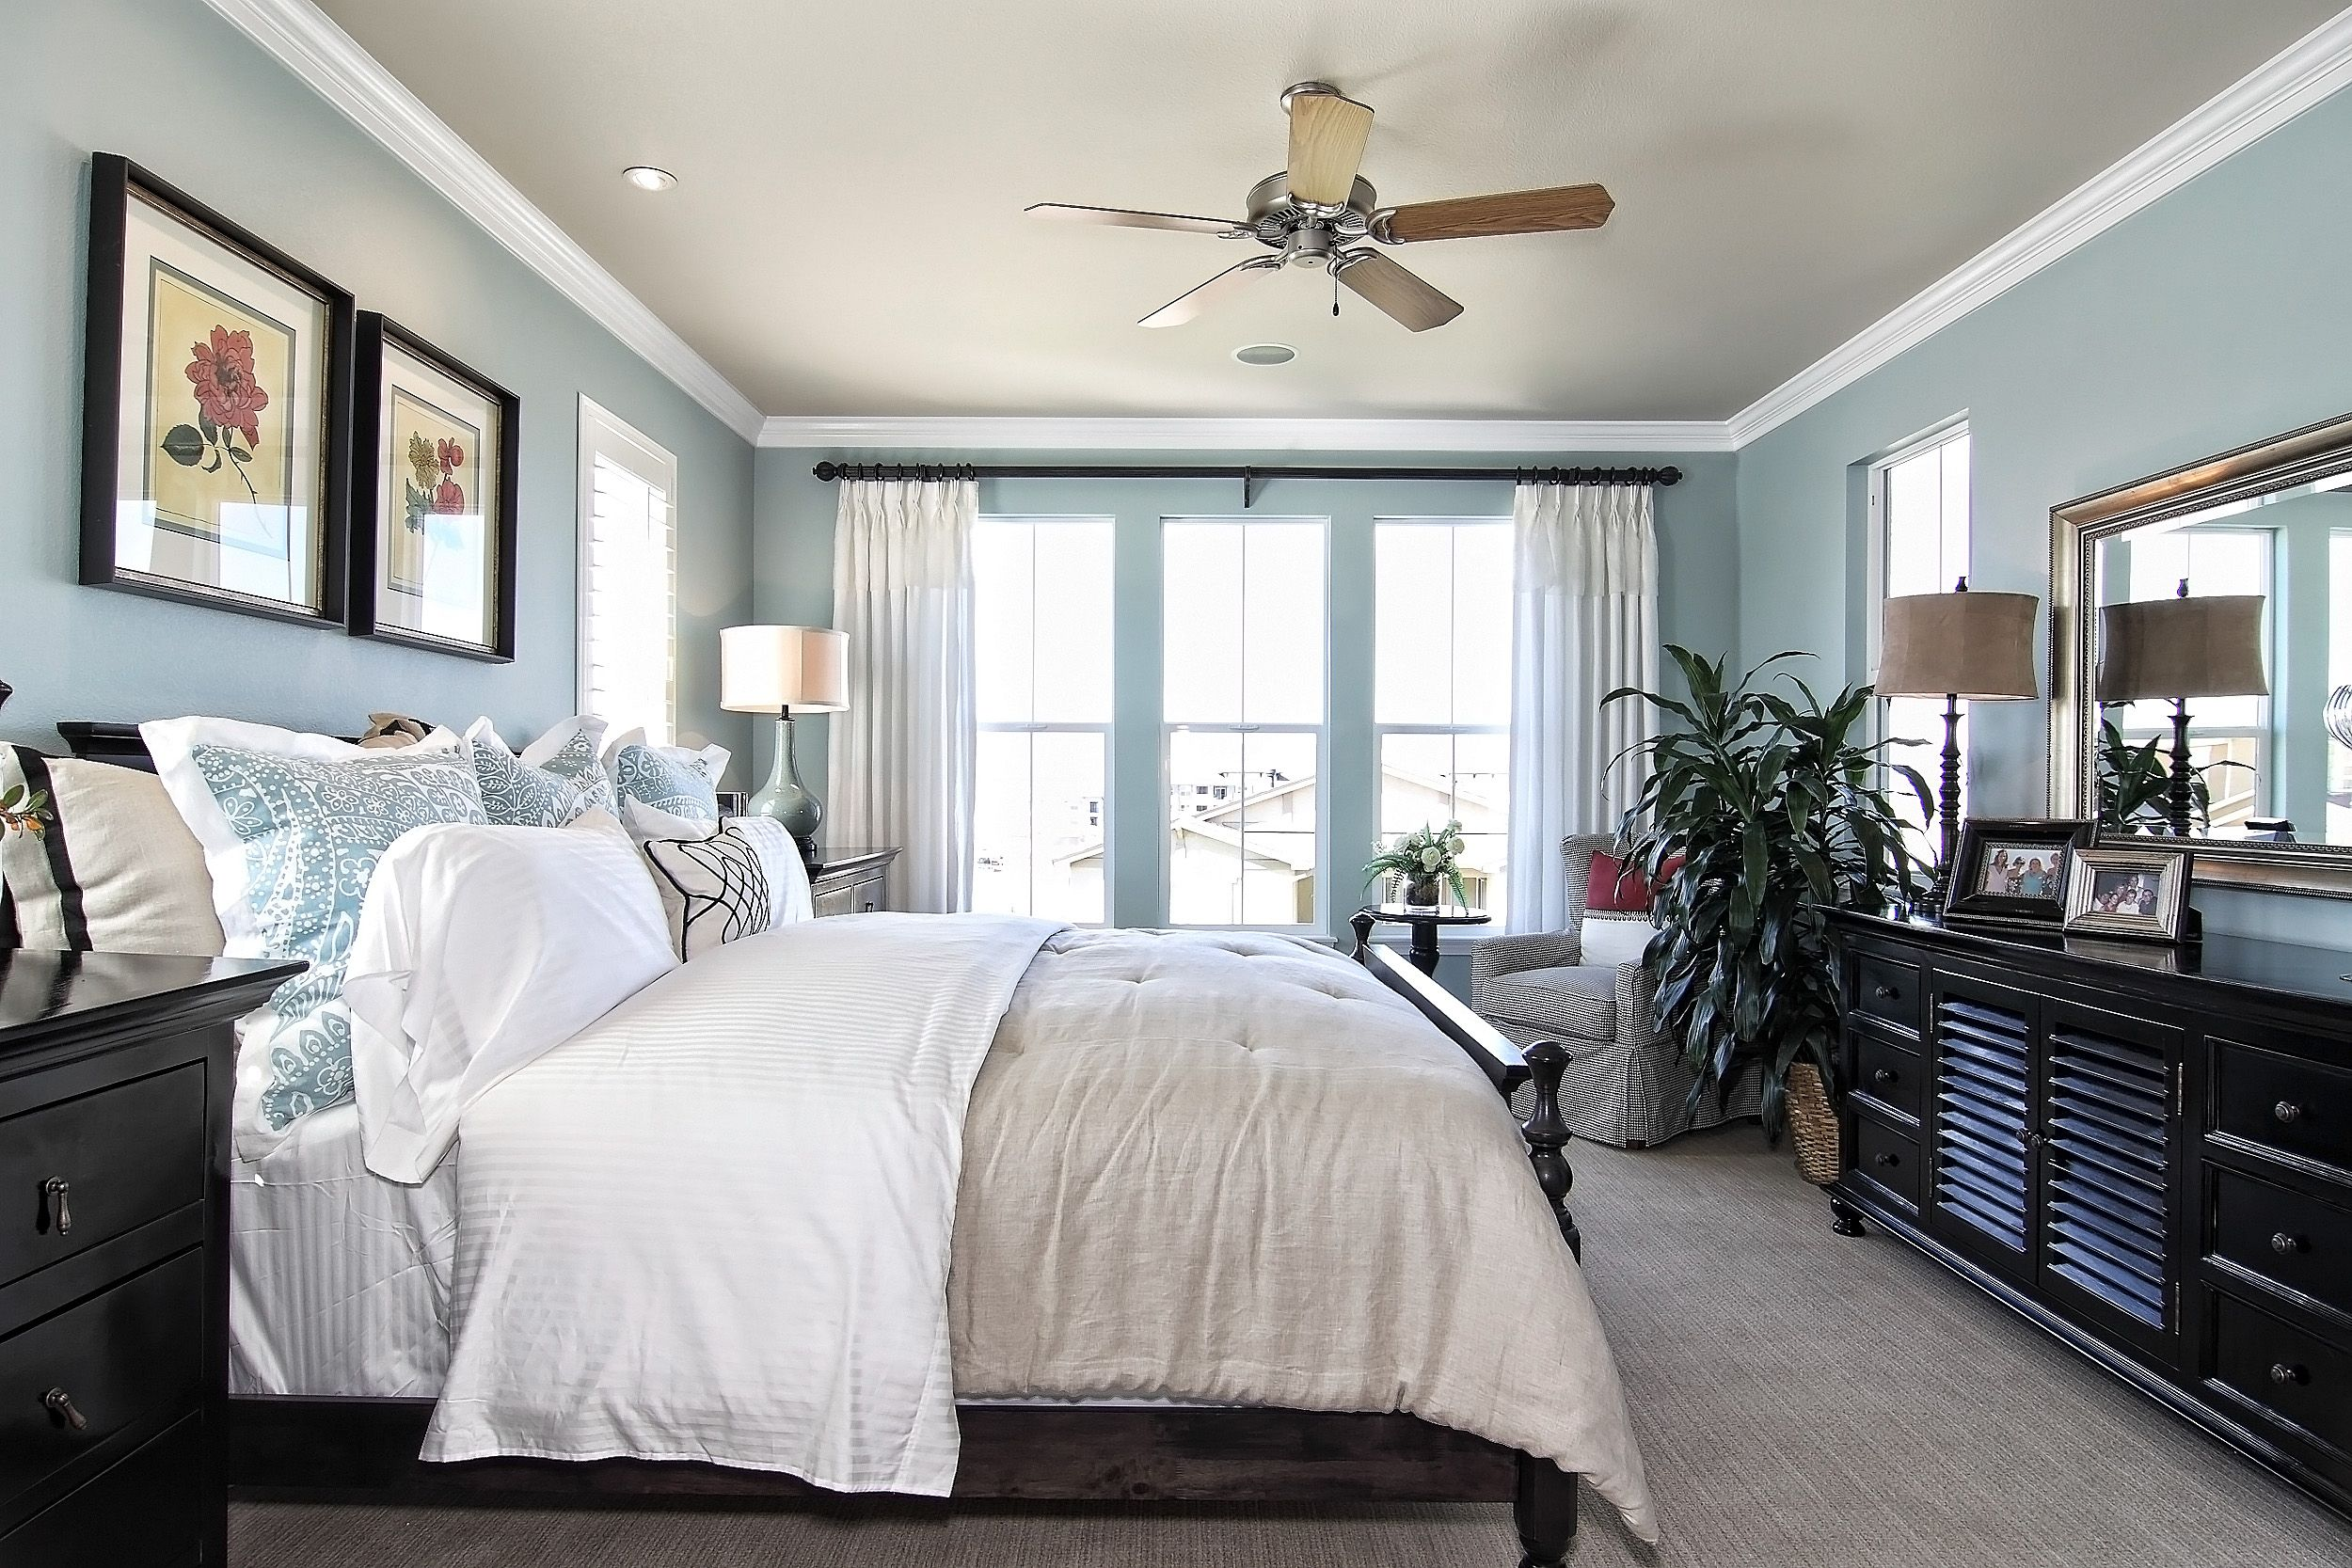 color bedroom ideas master bedroom light blue white and black relaxing 11150